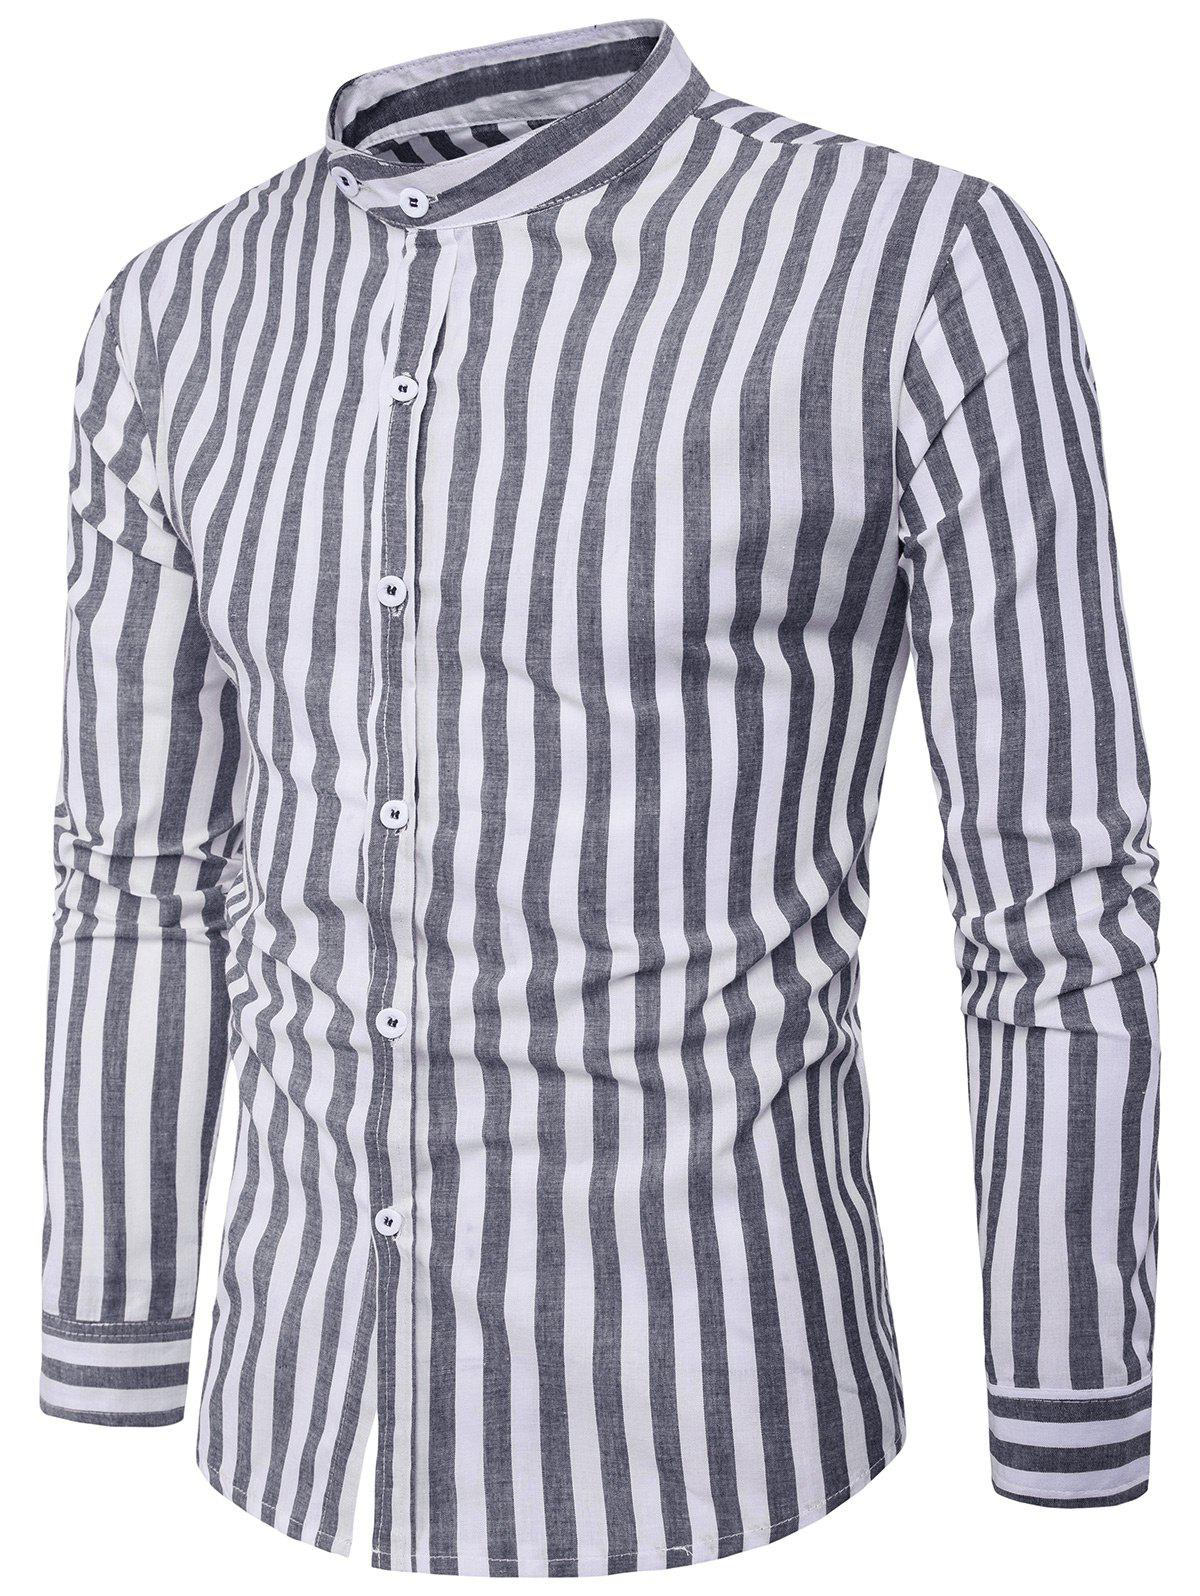 Vintage Vertical Stripe Long Sleeve Shirt смеситель для кухни zorg zr 800 k a7 5